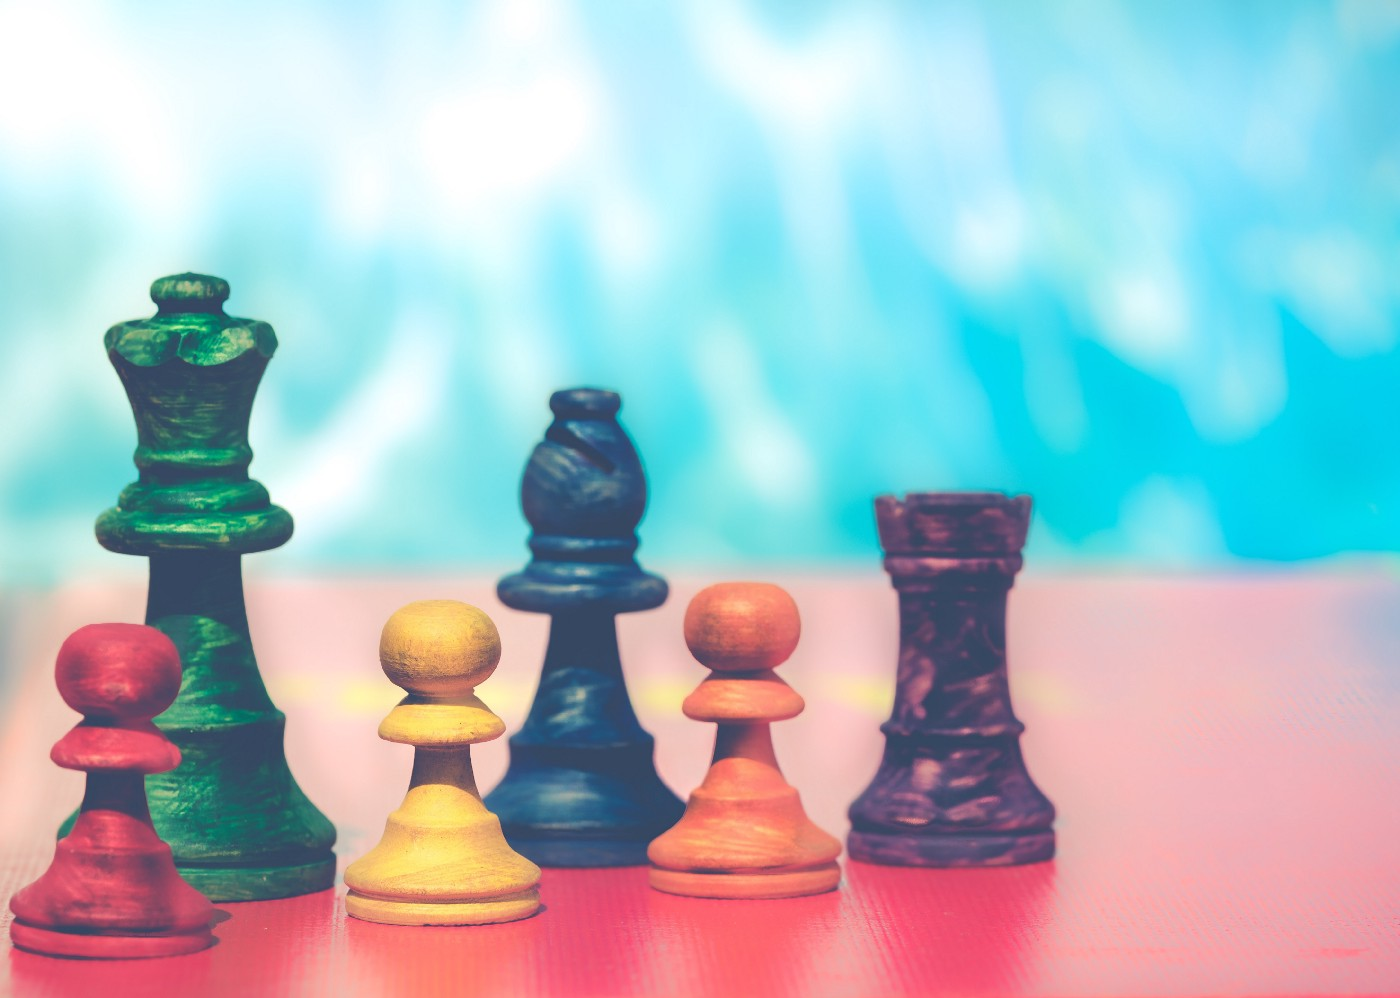 Colorful chess pieces.